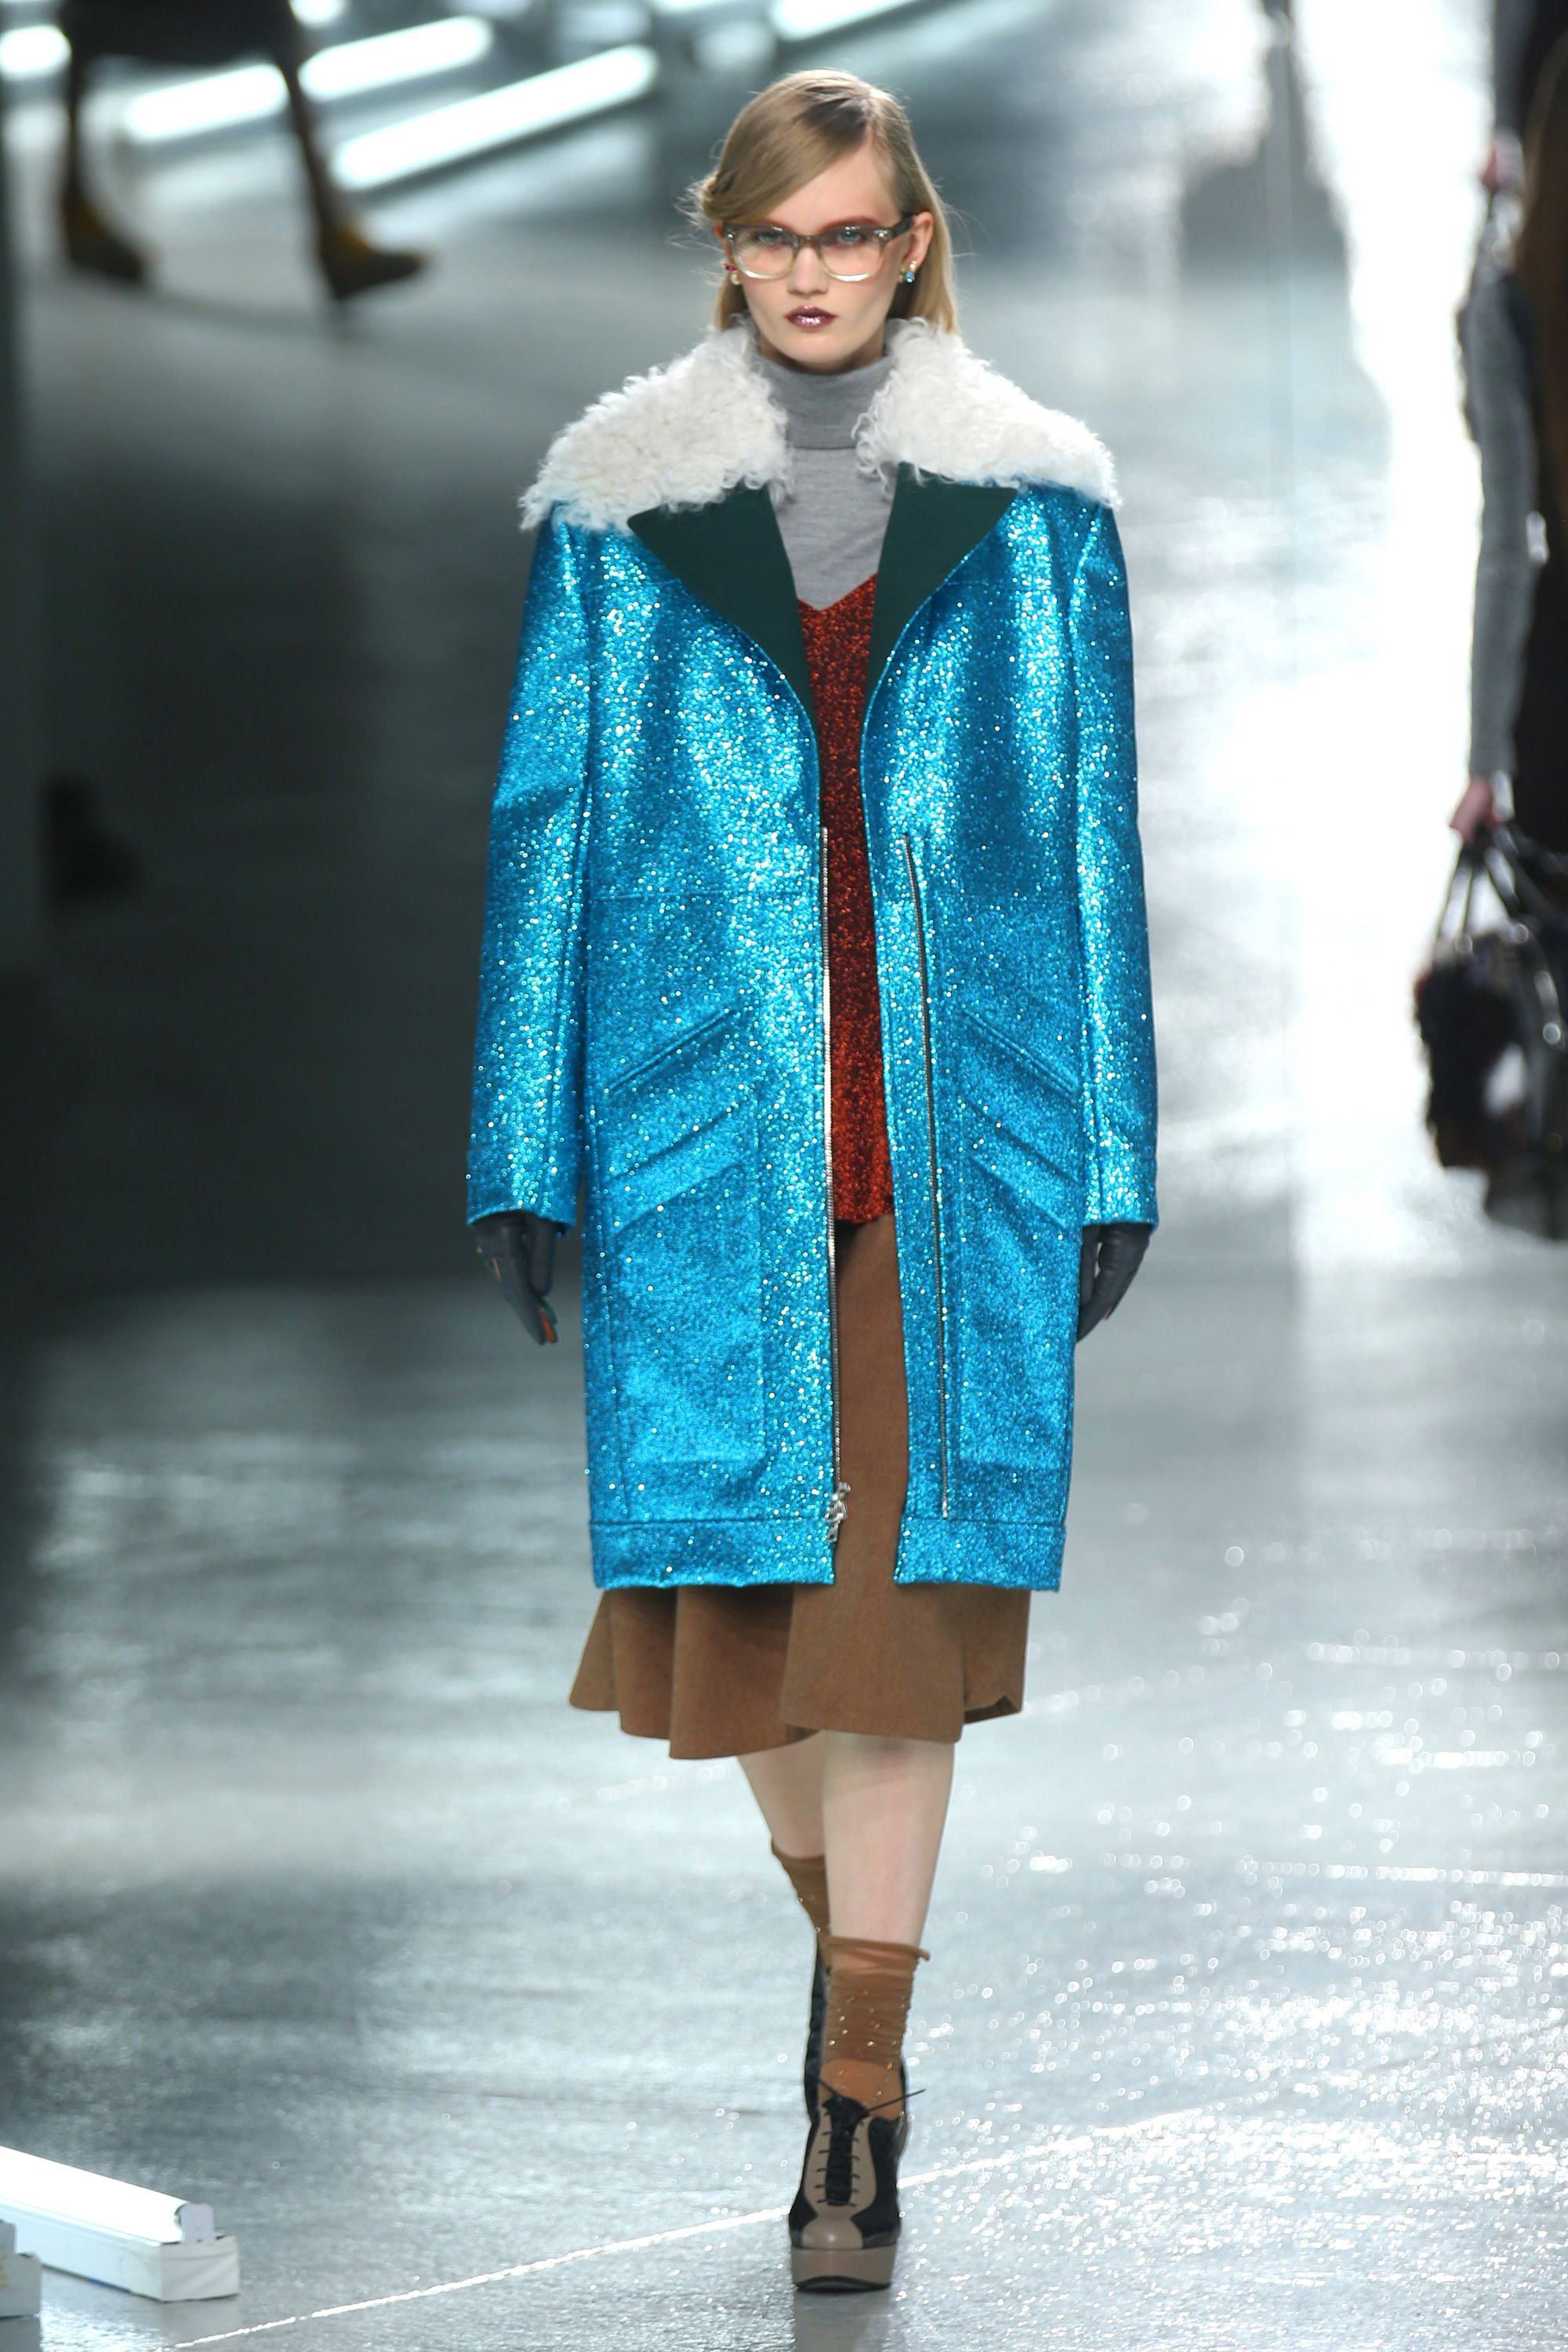 """<p>I have lusted after the <a href=""""http://www.vogue.com/fashion-shows/fall-2014-ready-to-wear/rodarte/slideshow/collection#19"""" target=""""_blank"""">Rodarte Fall 2014 glitter coats</a> and the <a href=""""http://www.antwerp-fashion.be/show2014/raffaela-graspointner.html"""" target=""""_blank"""">paillettes-covered coat</a> by Raffaela Graspointner, but there are also many vintage sparkly numbers out there. All I know is that we should all be like the lovely Aretha Franklin <a href=""""https://www.youtube.com/watch?v=y0URYw27qd0"""" target=""""_blank"""">and shine like a diamond ring</a>.</p>"""